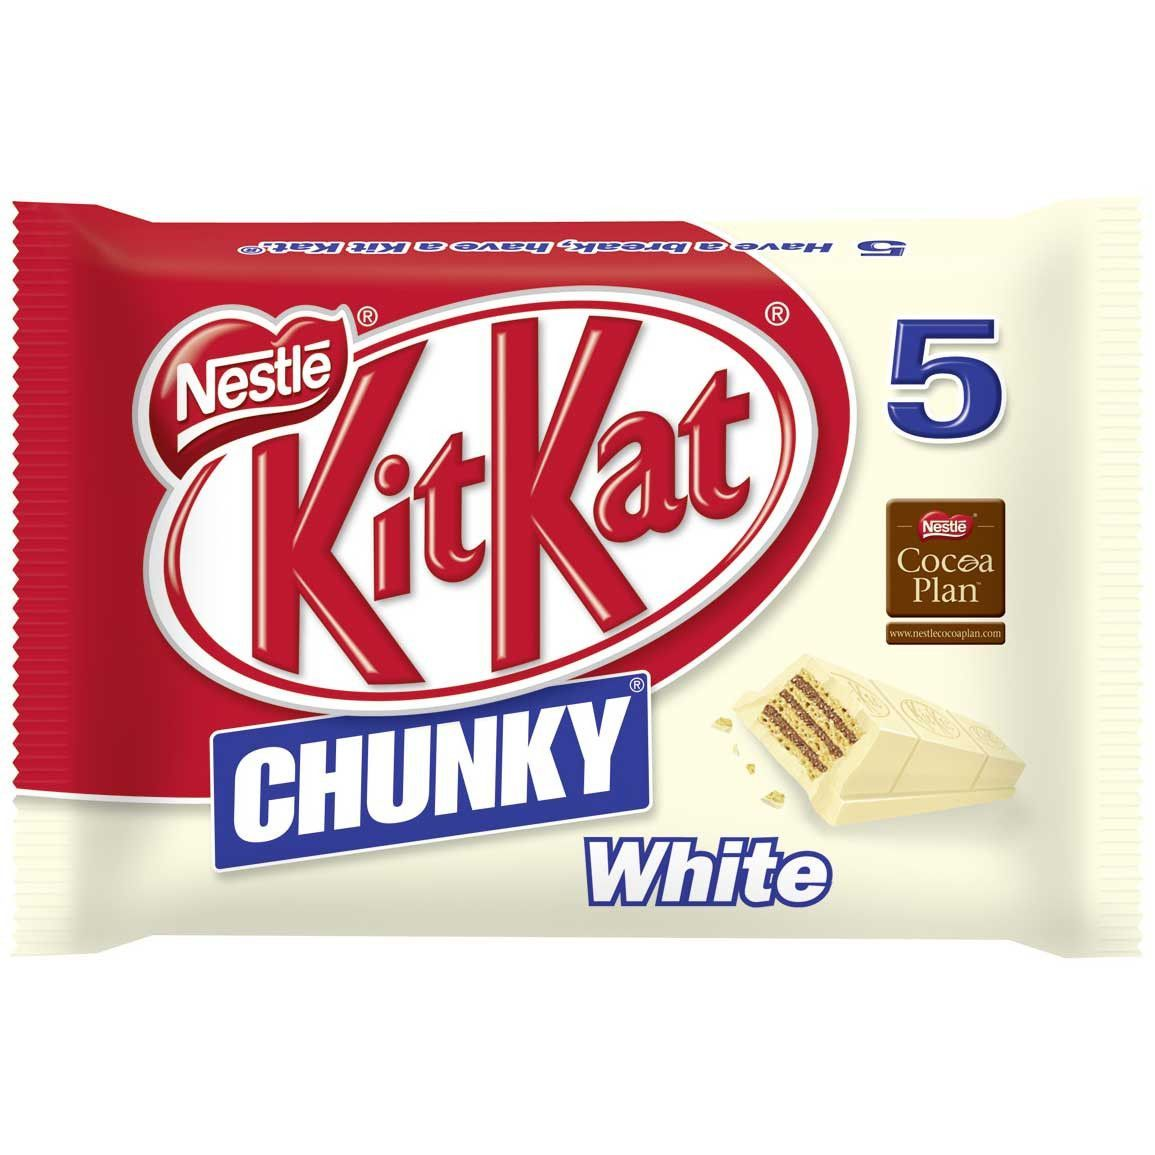 in USA- KitKat Chunky WHITE Chocolate Candy Bar- Pack of 5